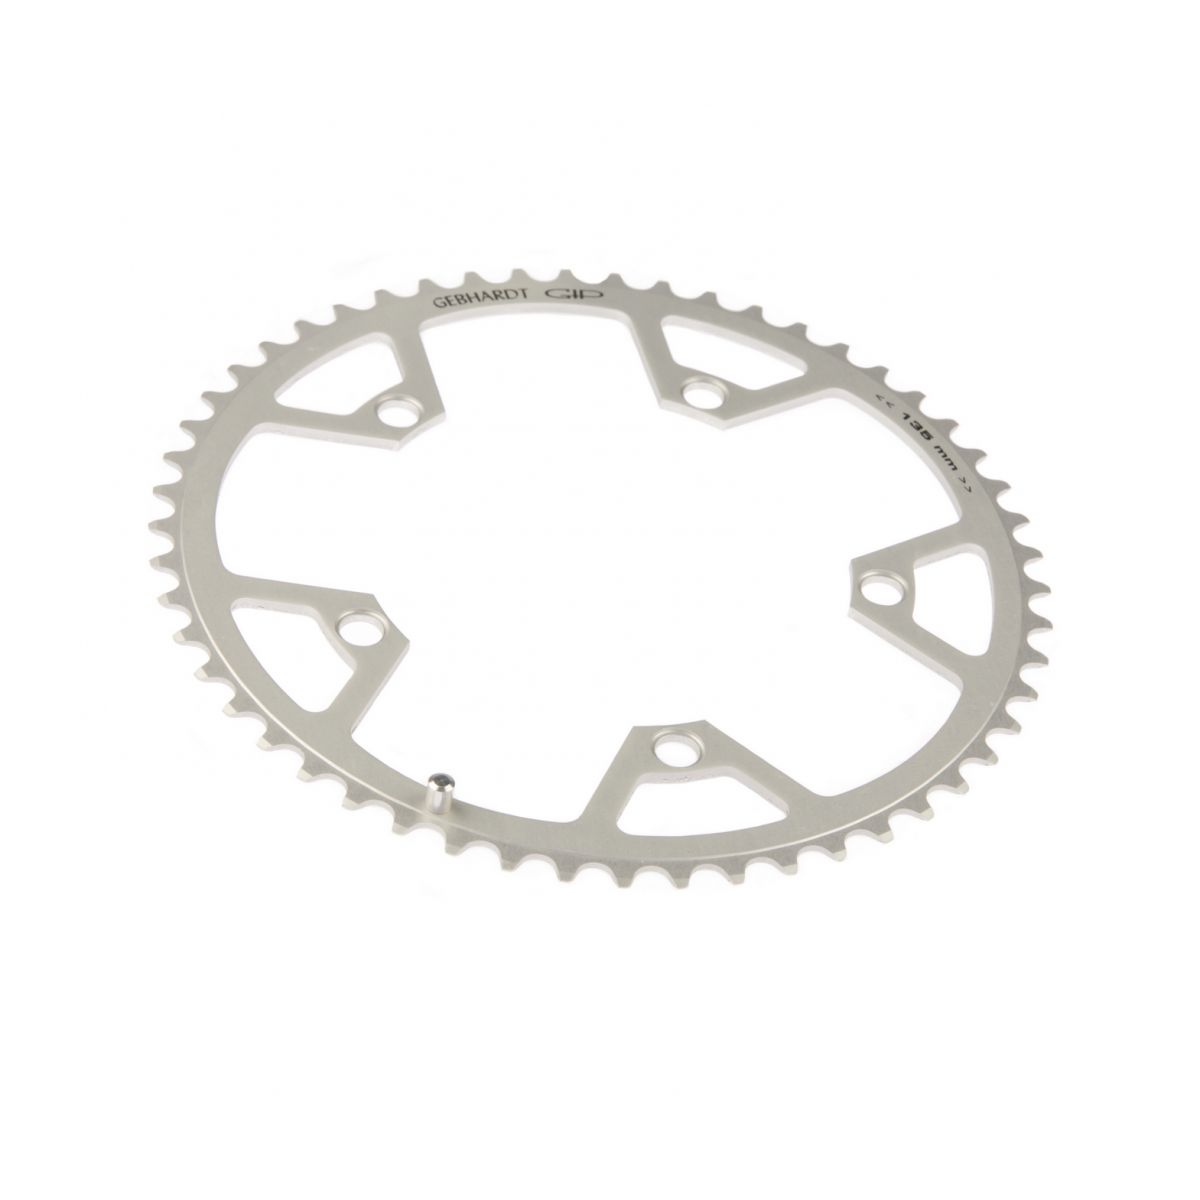 gebhardt chainring classic bcd 135 mm 5hole 46t silver